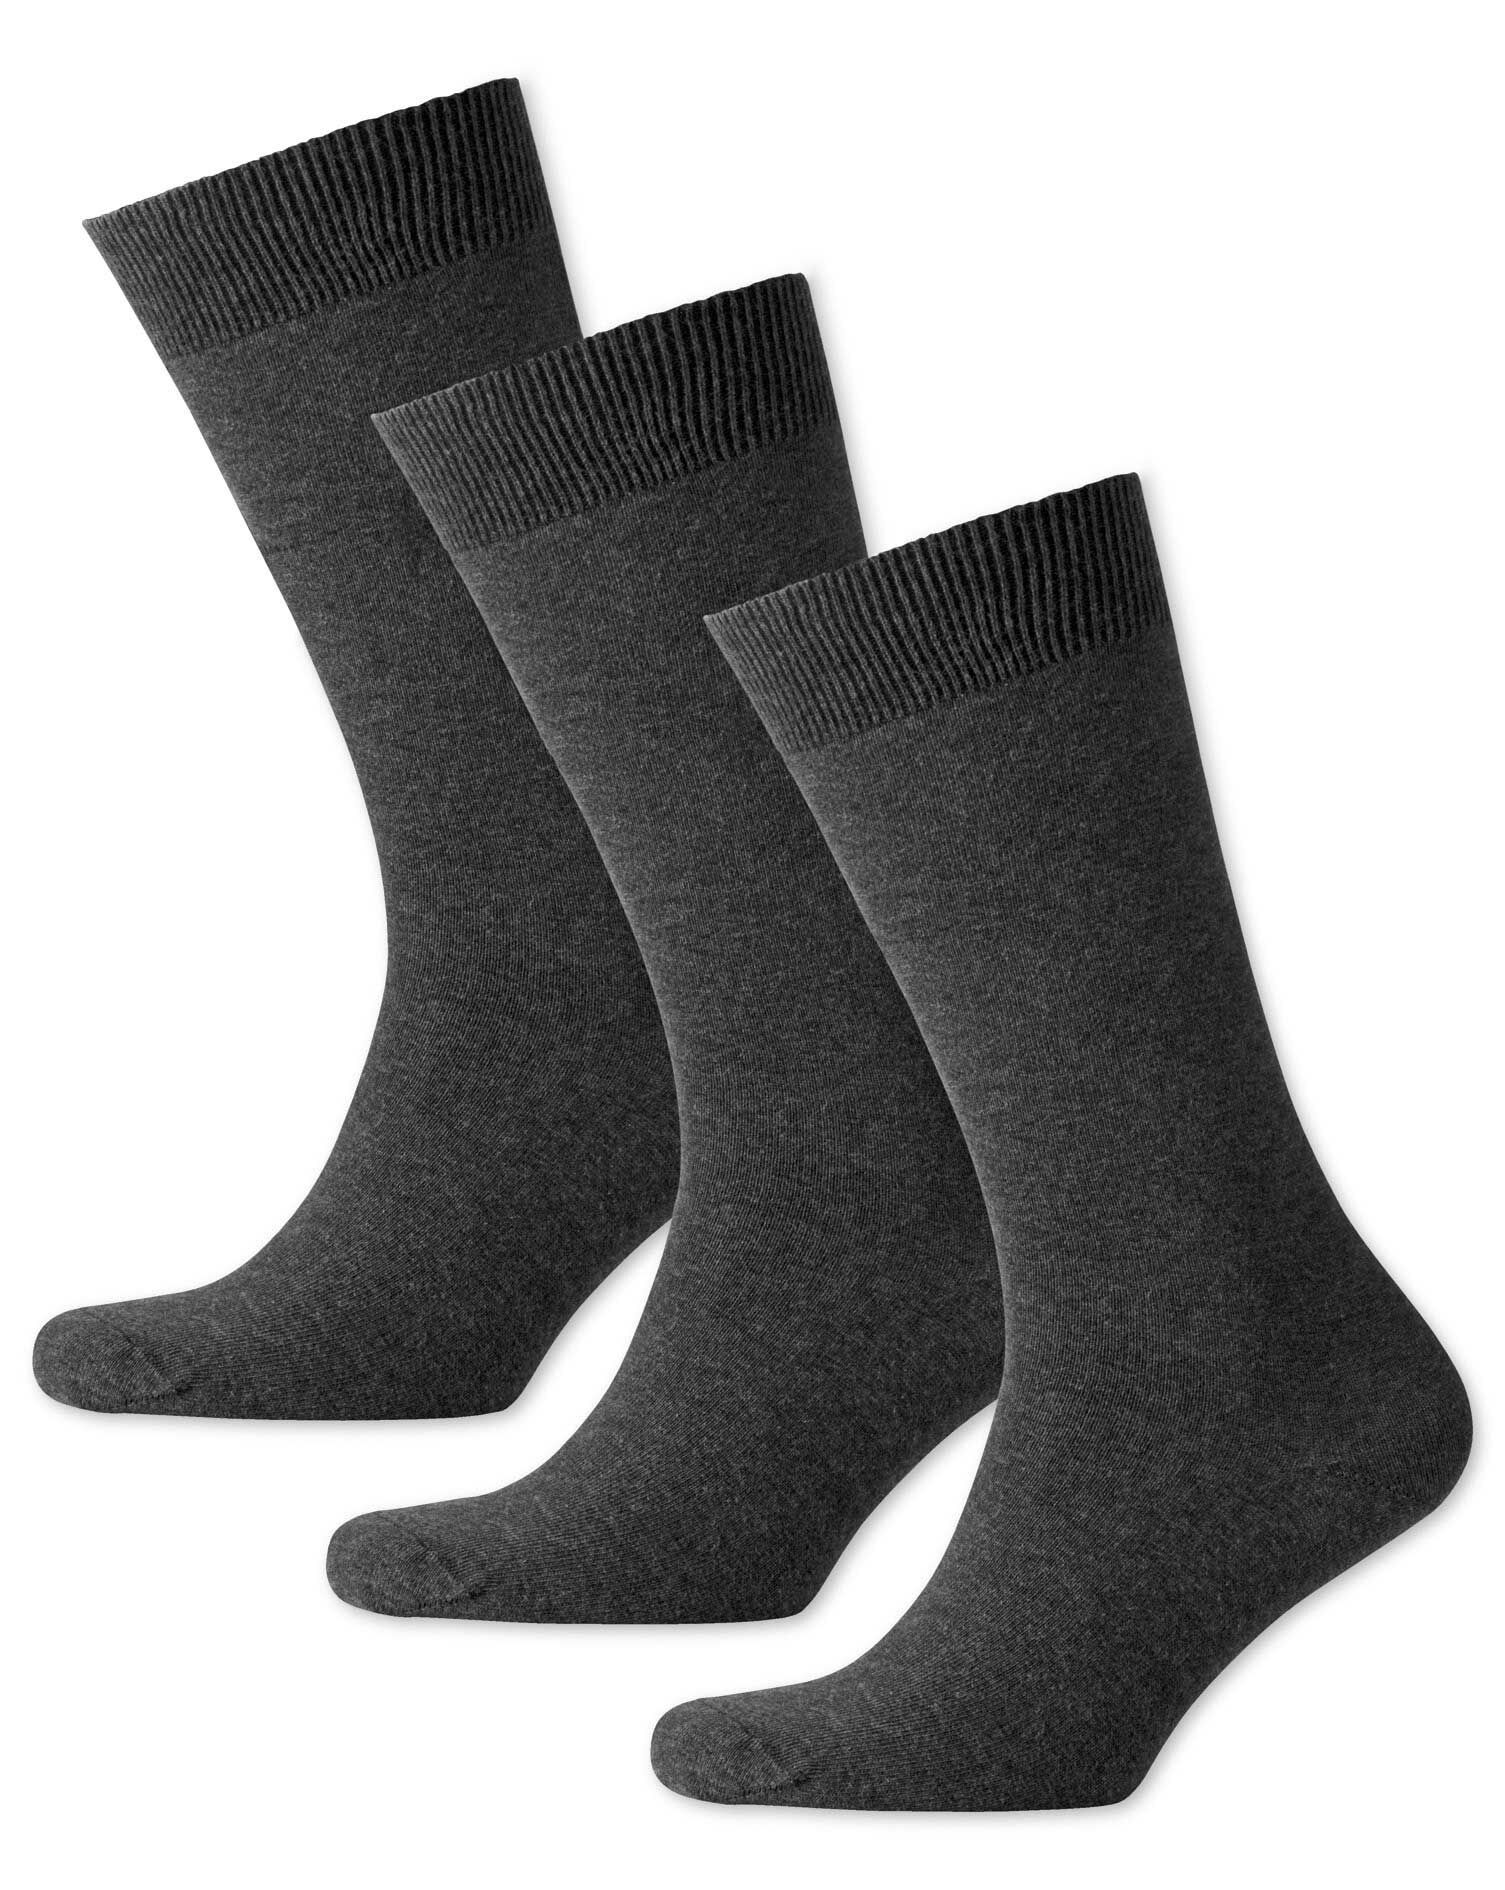 Grey Cotton Rich 3 Pack Socks Size Large by Charles Tyrwhitt